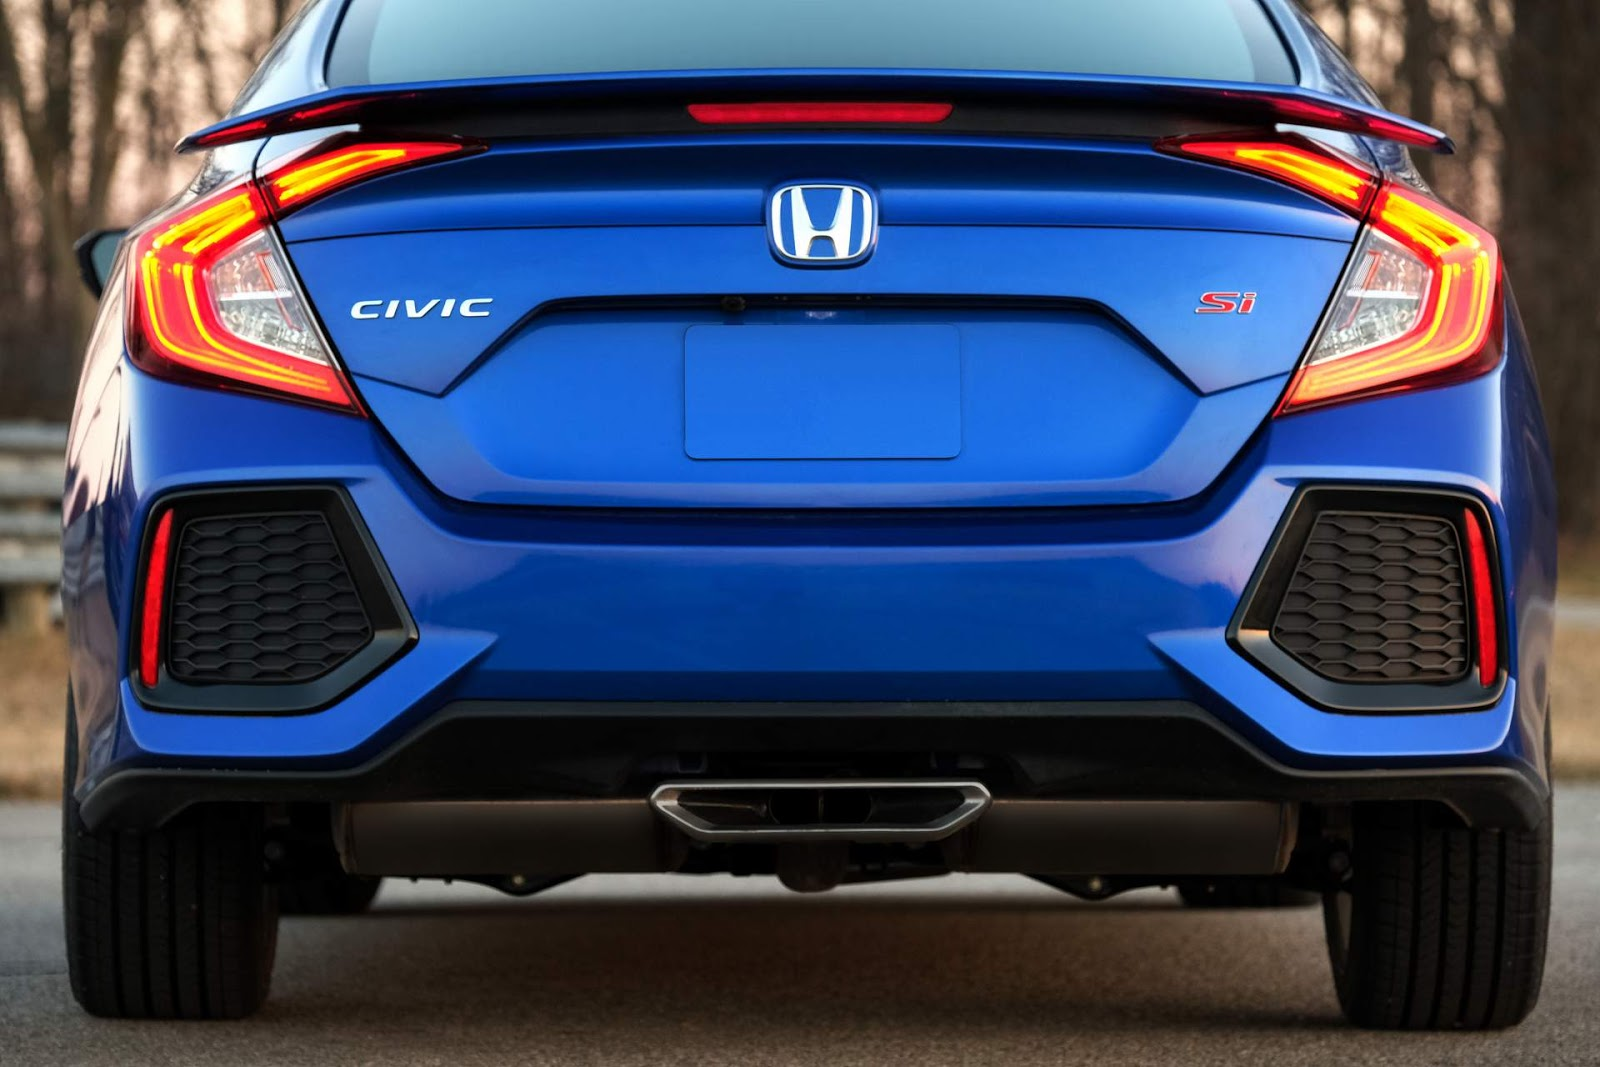 honda civic si 2017 pre o parte de r 83 7 mil eua car blog br. Black Bedroom Furniture Sets. Home Design Ideas